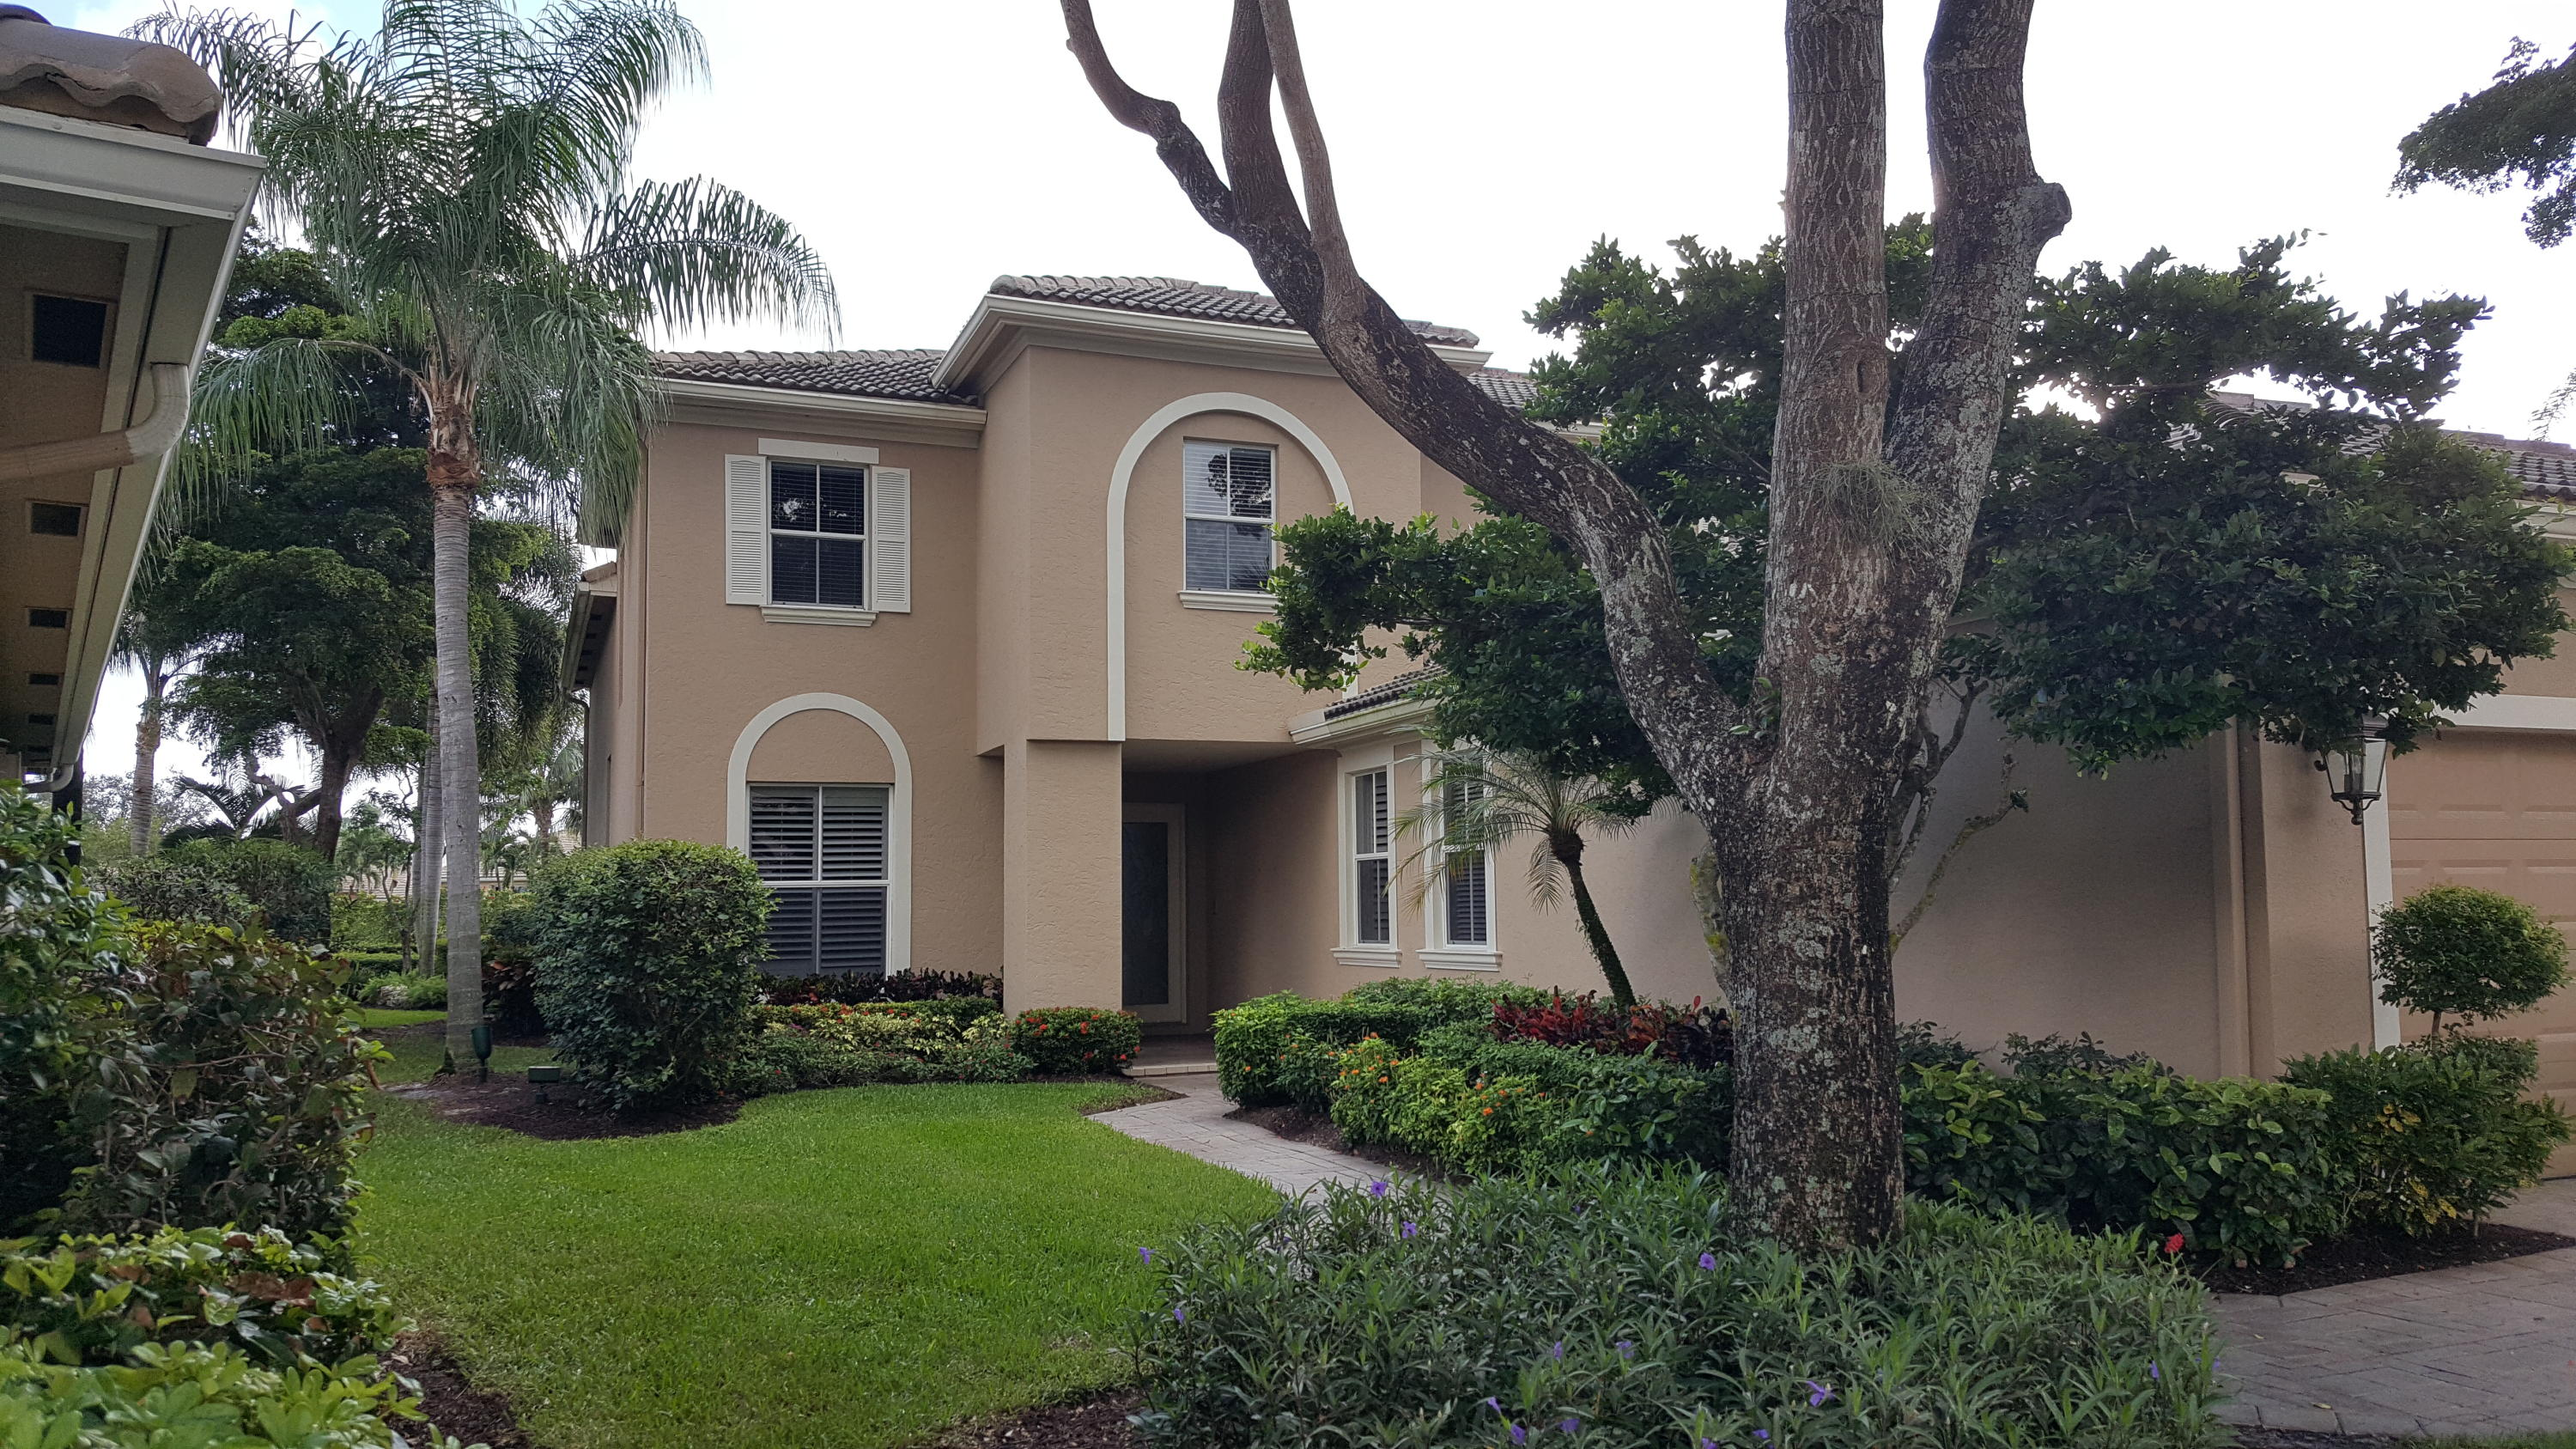 165 Orchid Cay Drive, Palm Beach Gardens, Florida 33418, 4 Bedrooms Bedrooms, ,3.1 BathroomsBathrooms,Single Family,For Rent,BallenIsles,Orchid Cay,RX-10574689